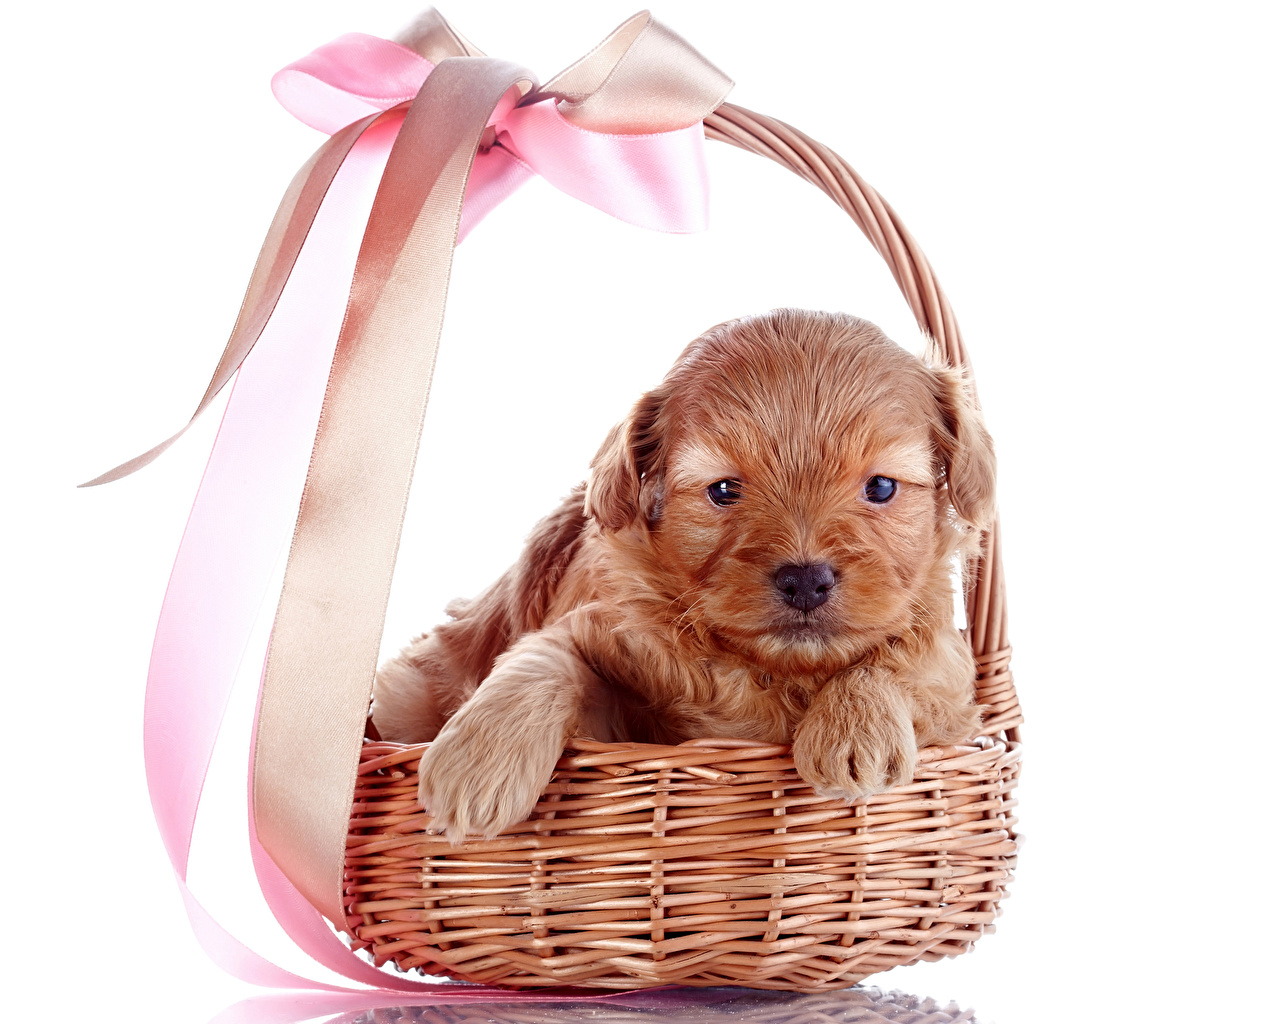 Wallpaper Puppy Dogs Paws Wicker basket bow knot animal White background puppies dog Bowknot Animals